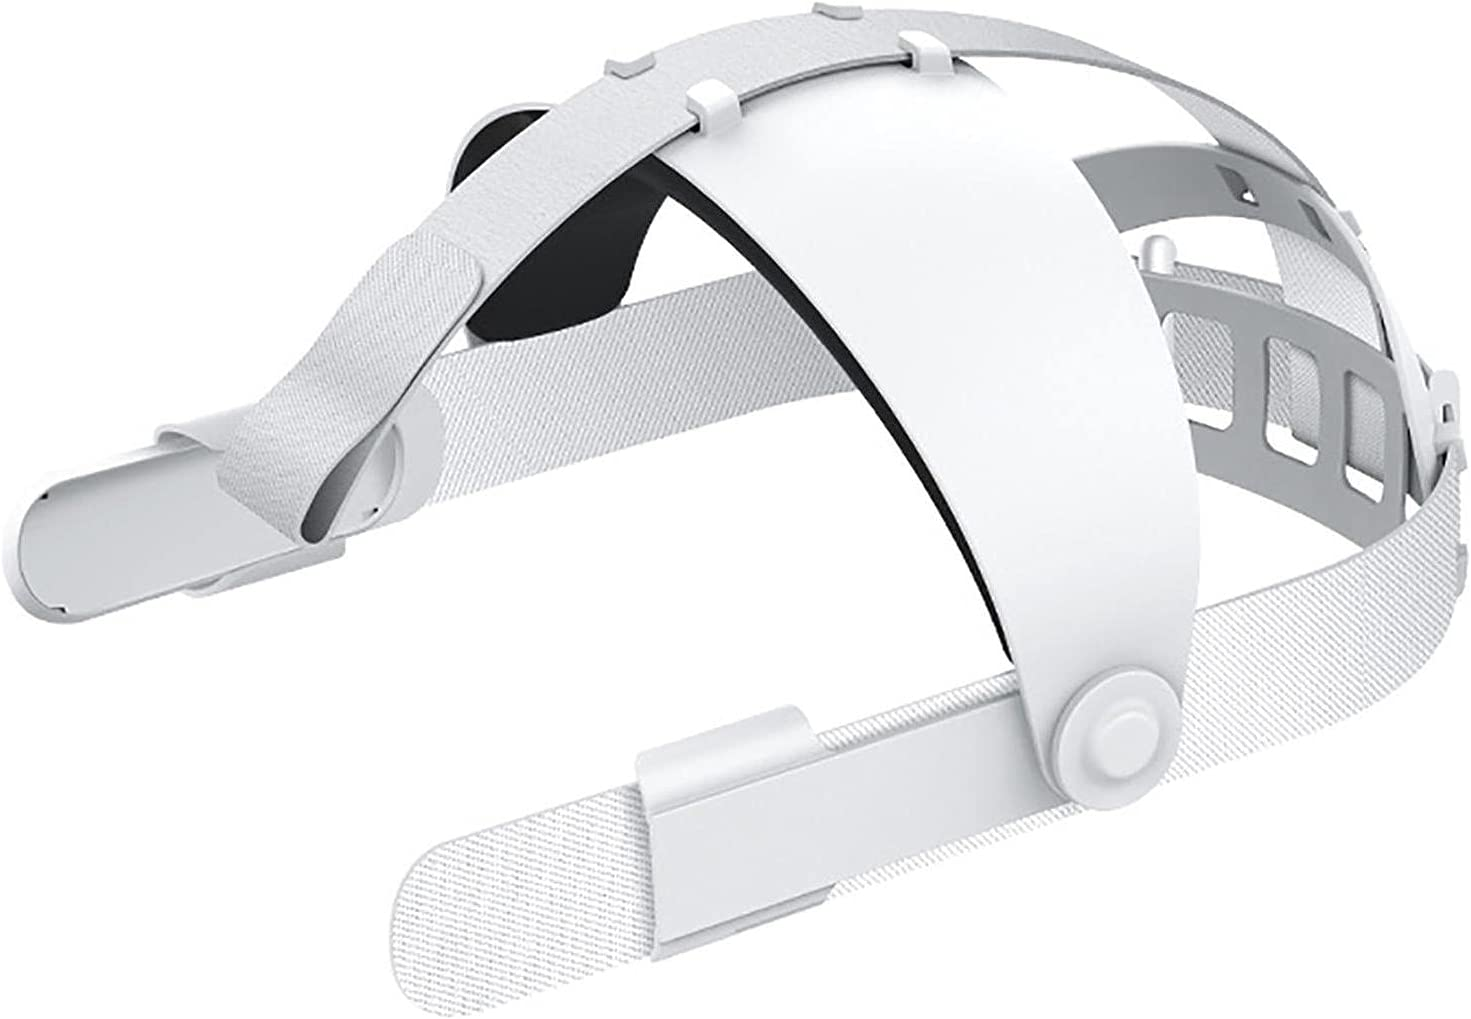 Foaenda Adjustable Minneapolis Mall Head Strap Safety and trust for Oculus Headset VR 2 Quest Com